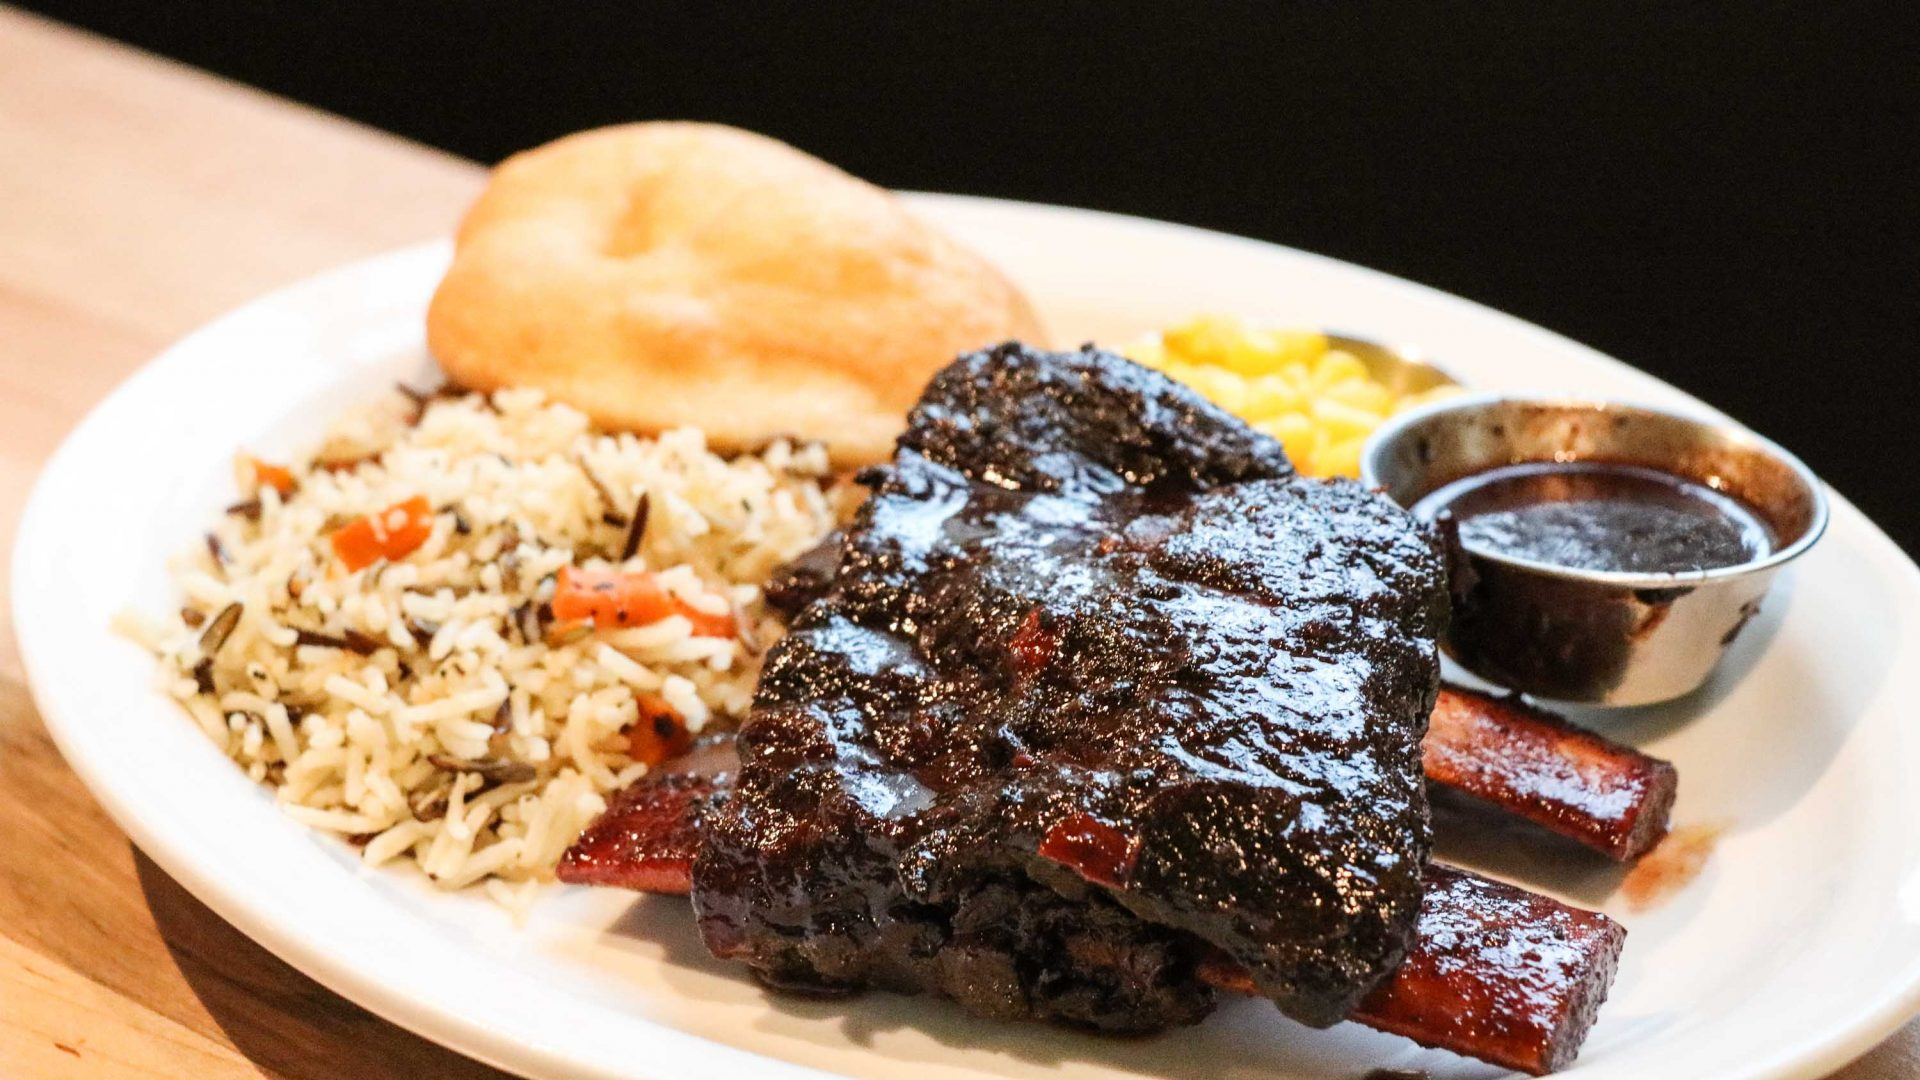 Canada First Nations cuisine: Bison ribs served at Feast Café Bistro.